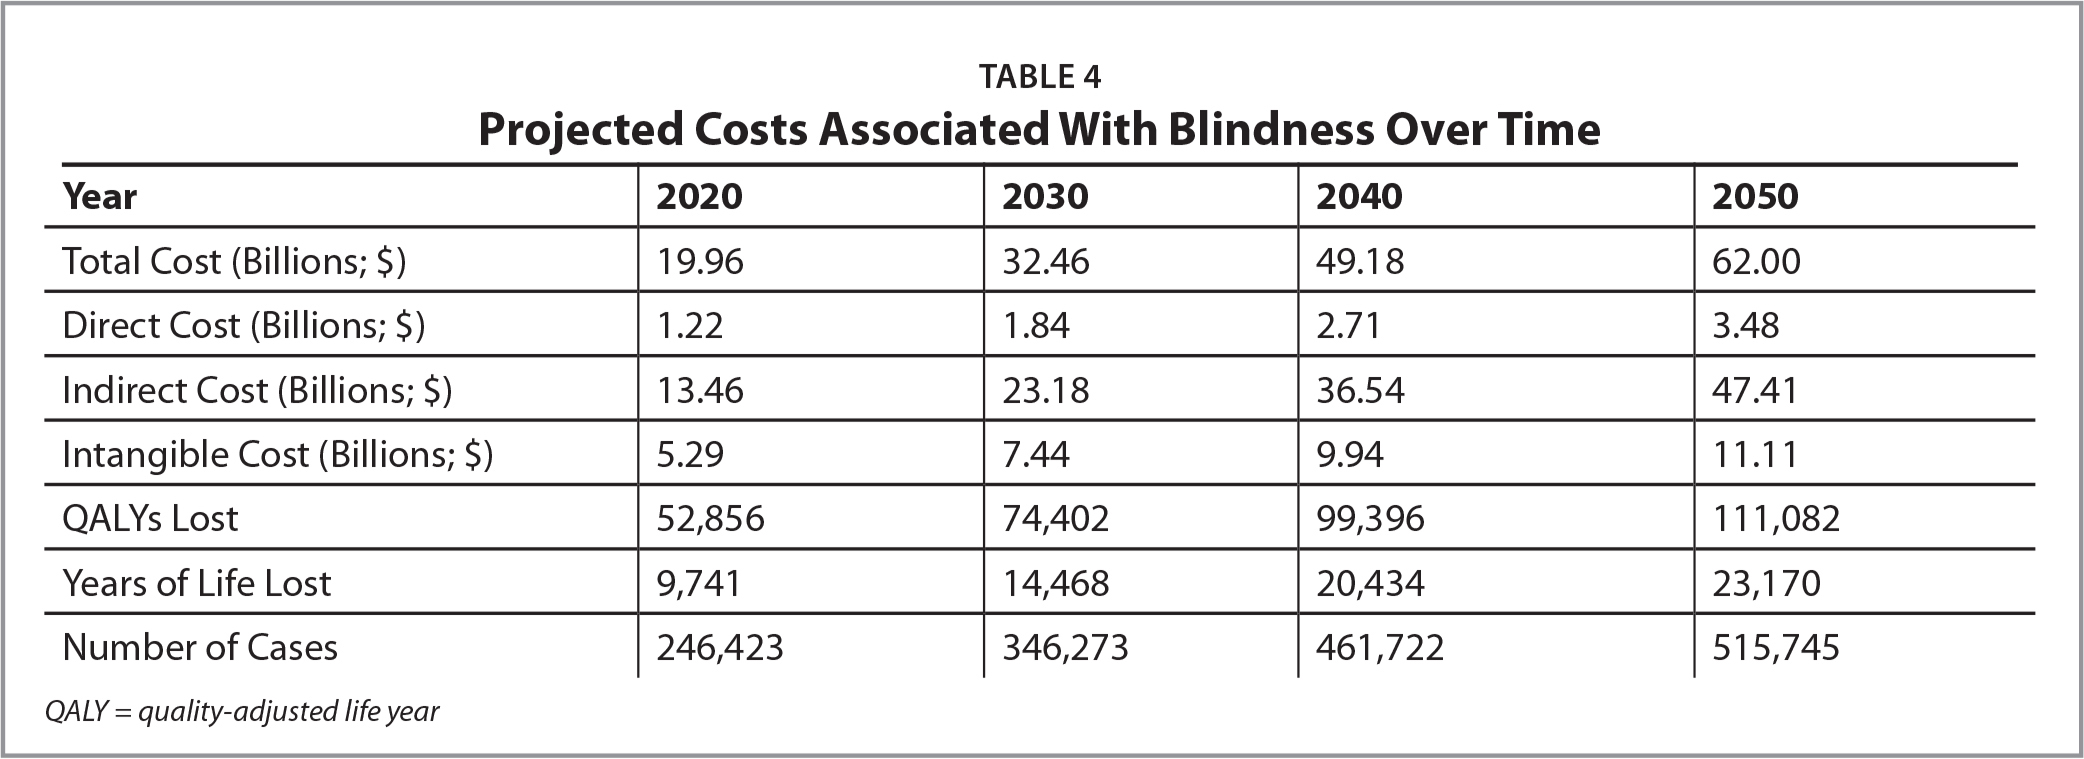 Projected Costs Associated With Blindness Over Time